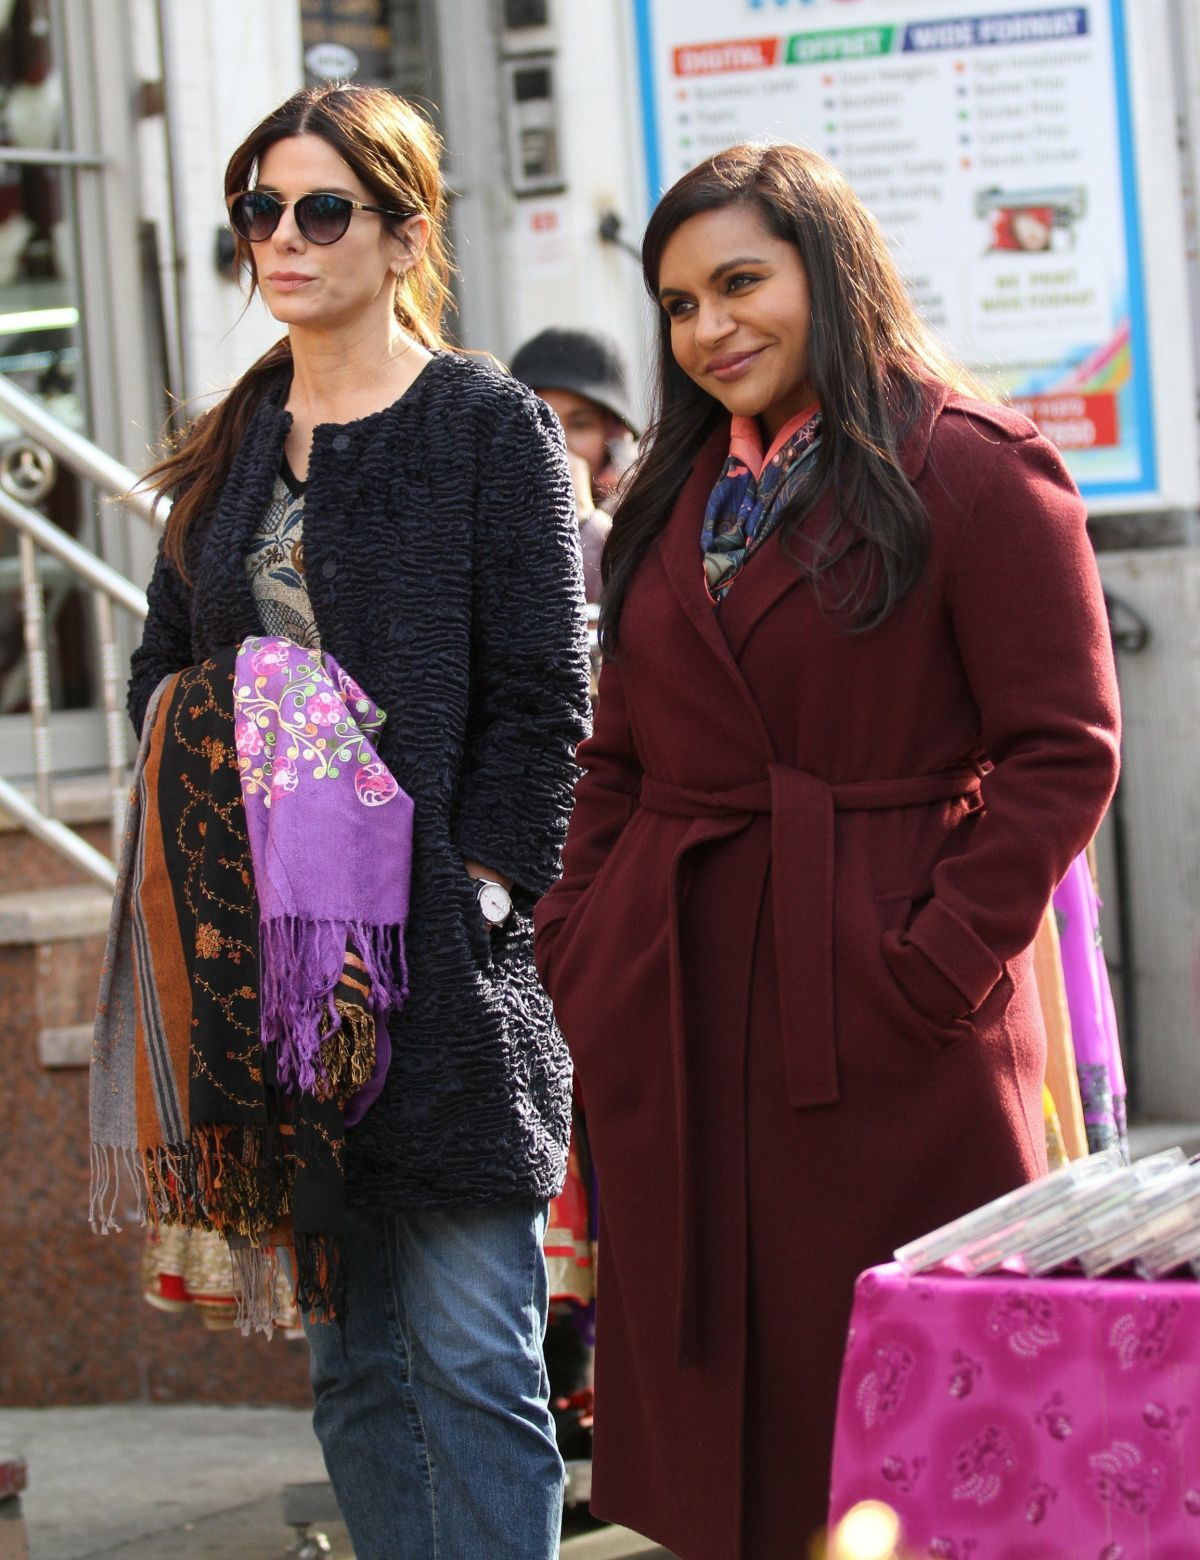 Sandra Bullock And Mindy Kaling On The Set Of Oceans 8 In New York 12 13 2016 Hawtcelebs